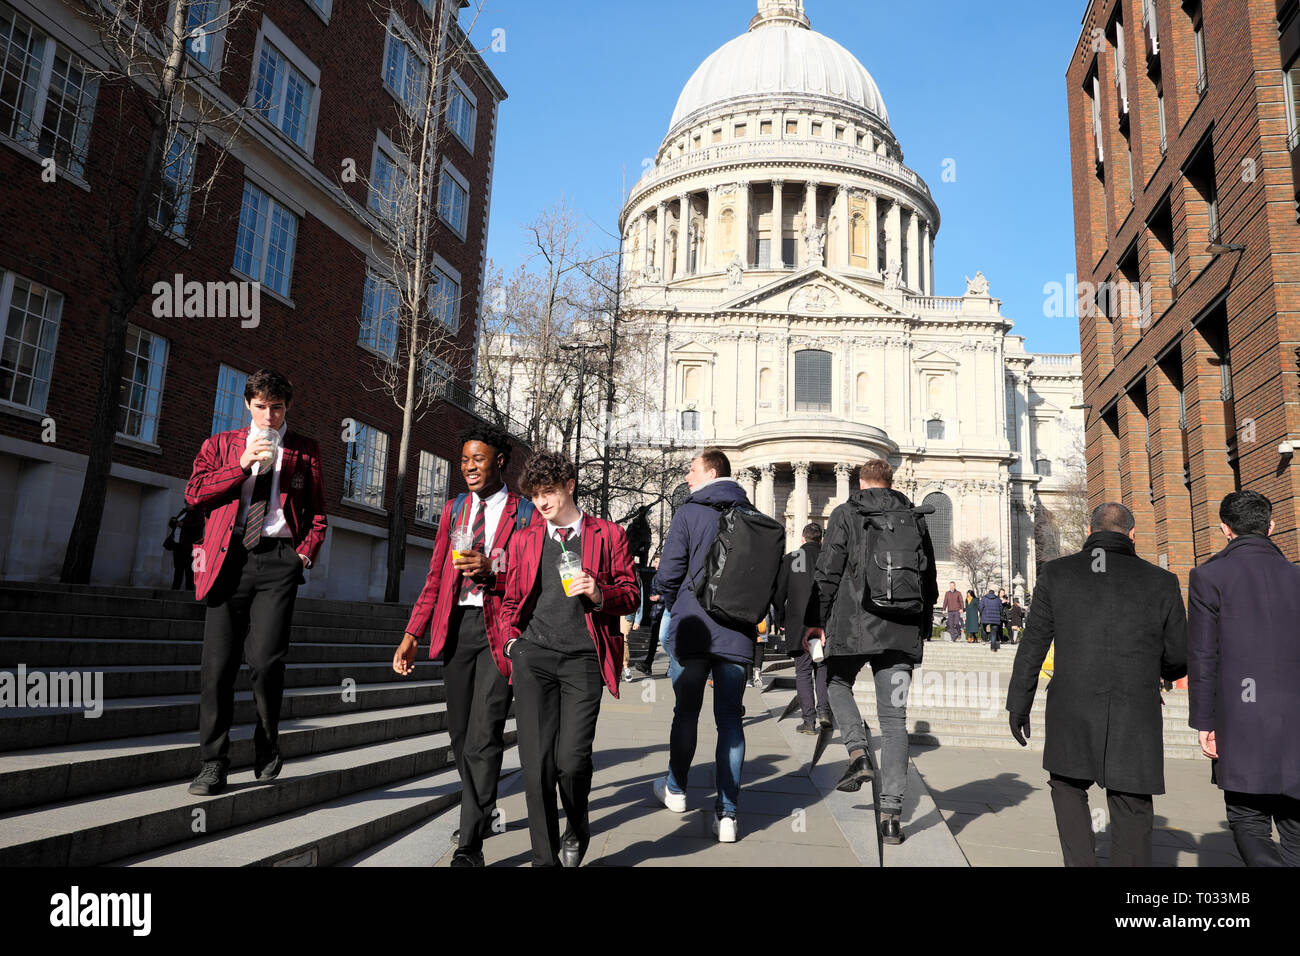 city-of-london-school-boys-pupils-students-in-uniform-enjoying-sunshine-at-lunchtime-near-st-pauls-cathedral-in-london-england-uk-kathy-dewitt-T033MB.jpg?profile=RESIZE_400x